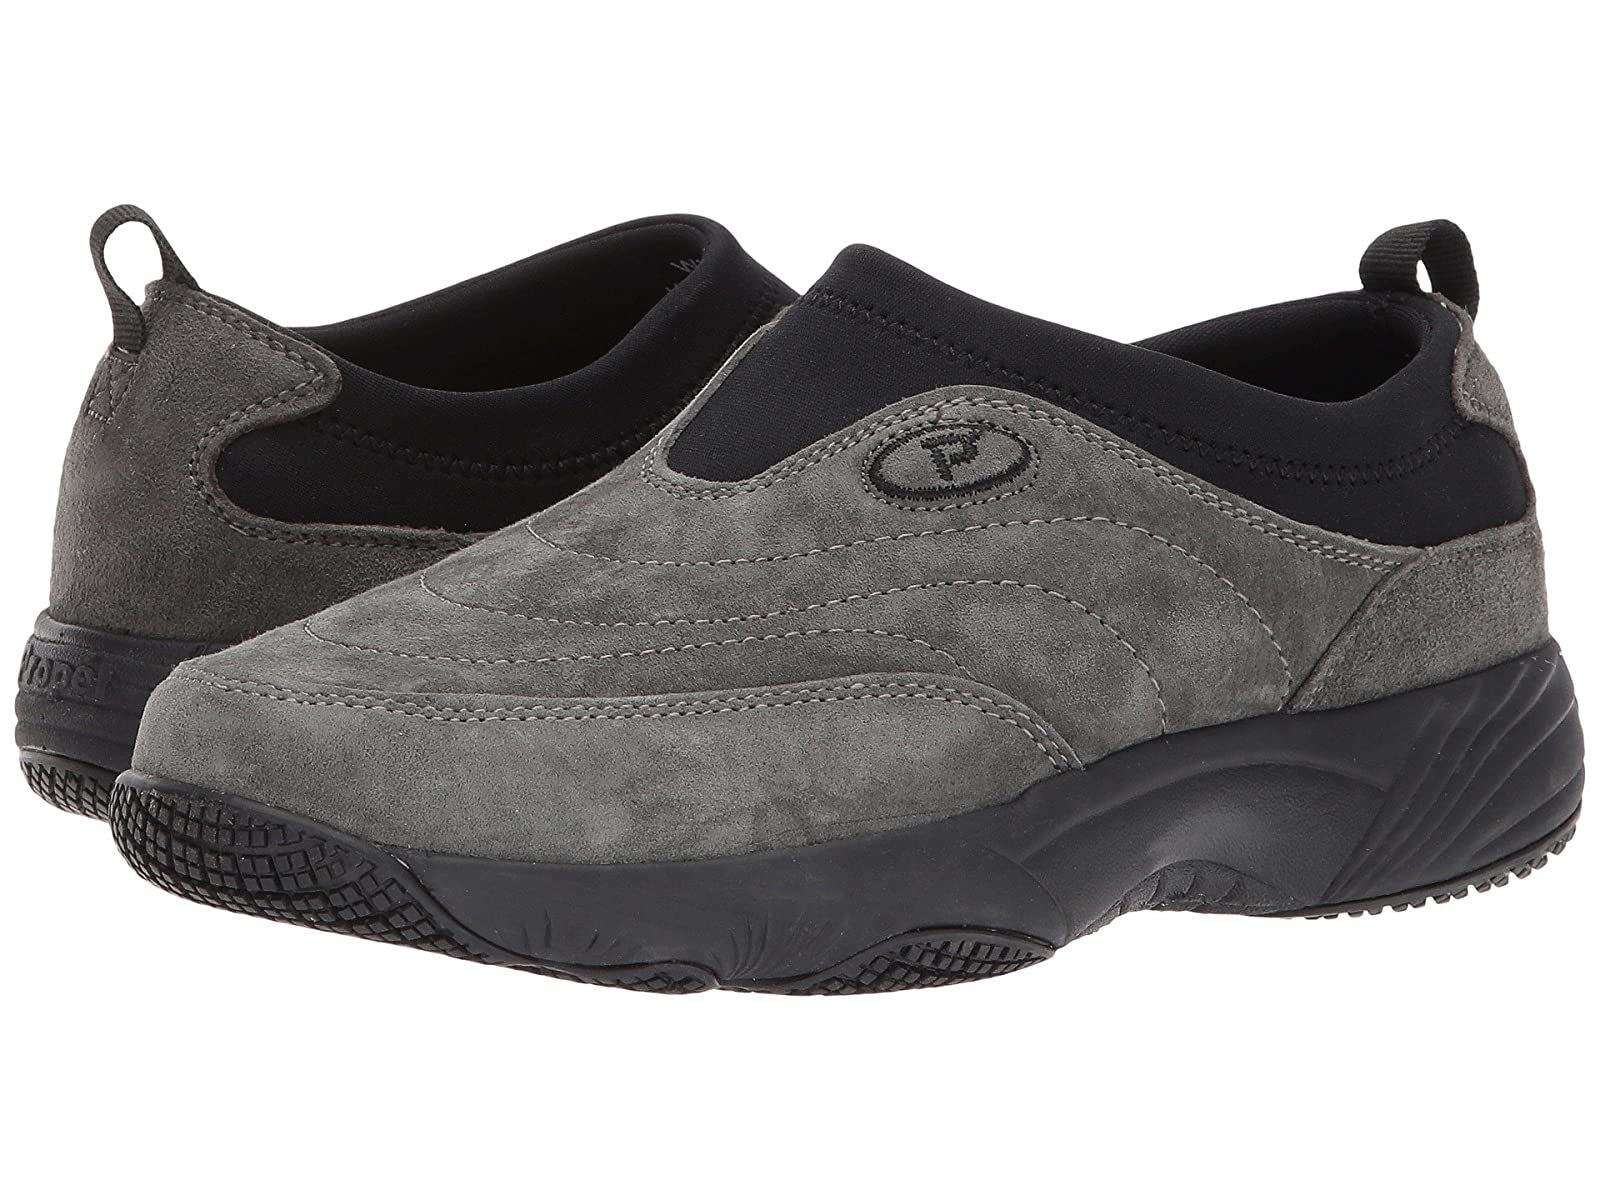 Propet Wash & Wear Slip-On IIAtmospheric grades have affordable shoes